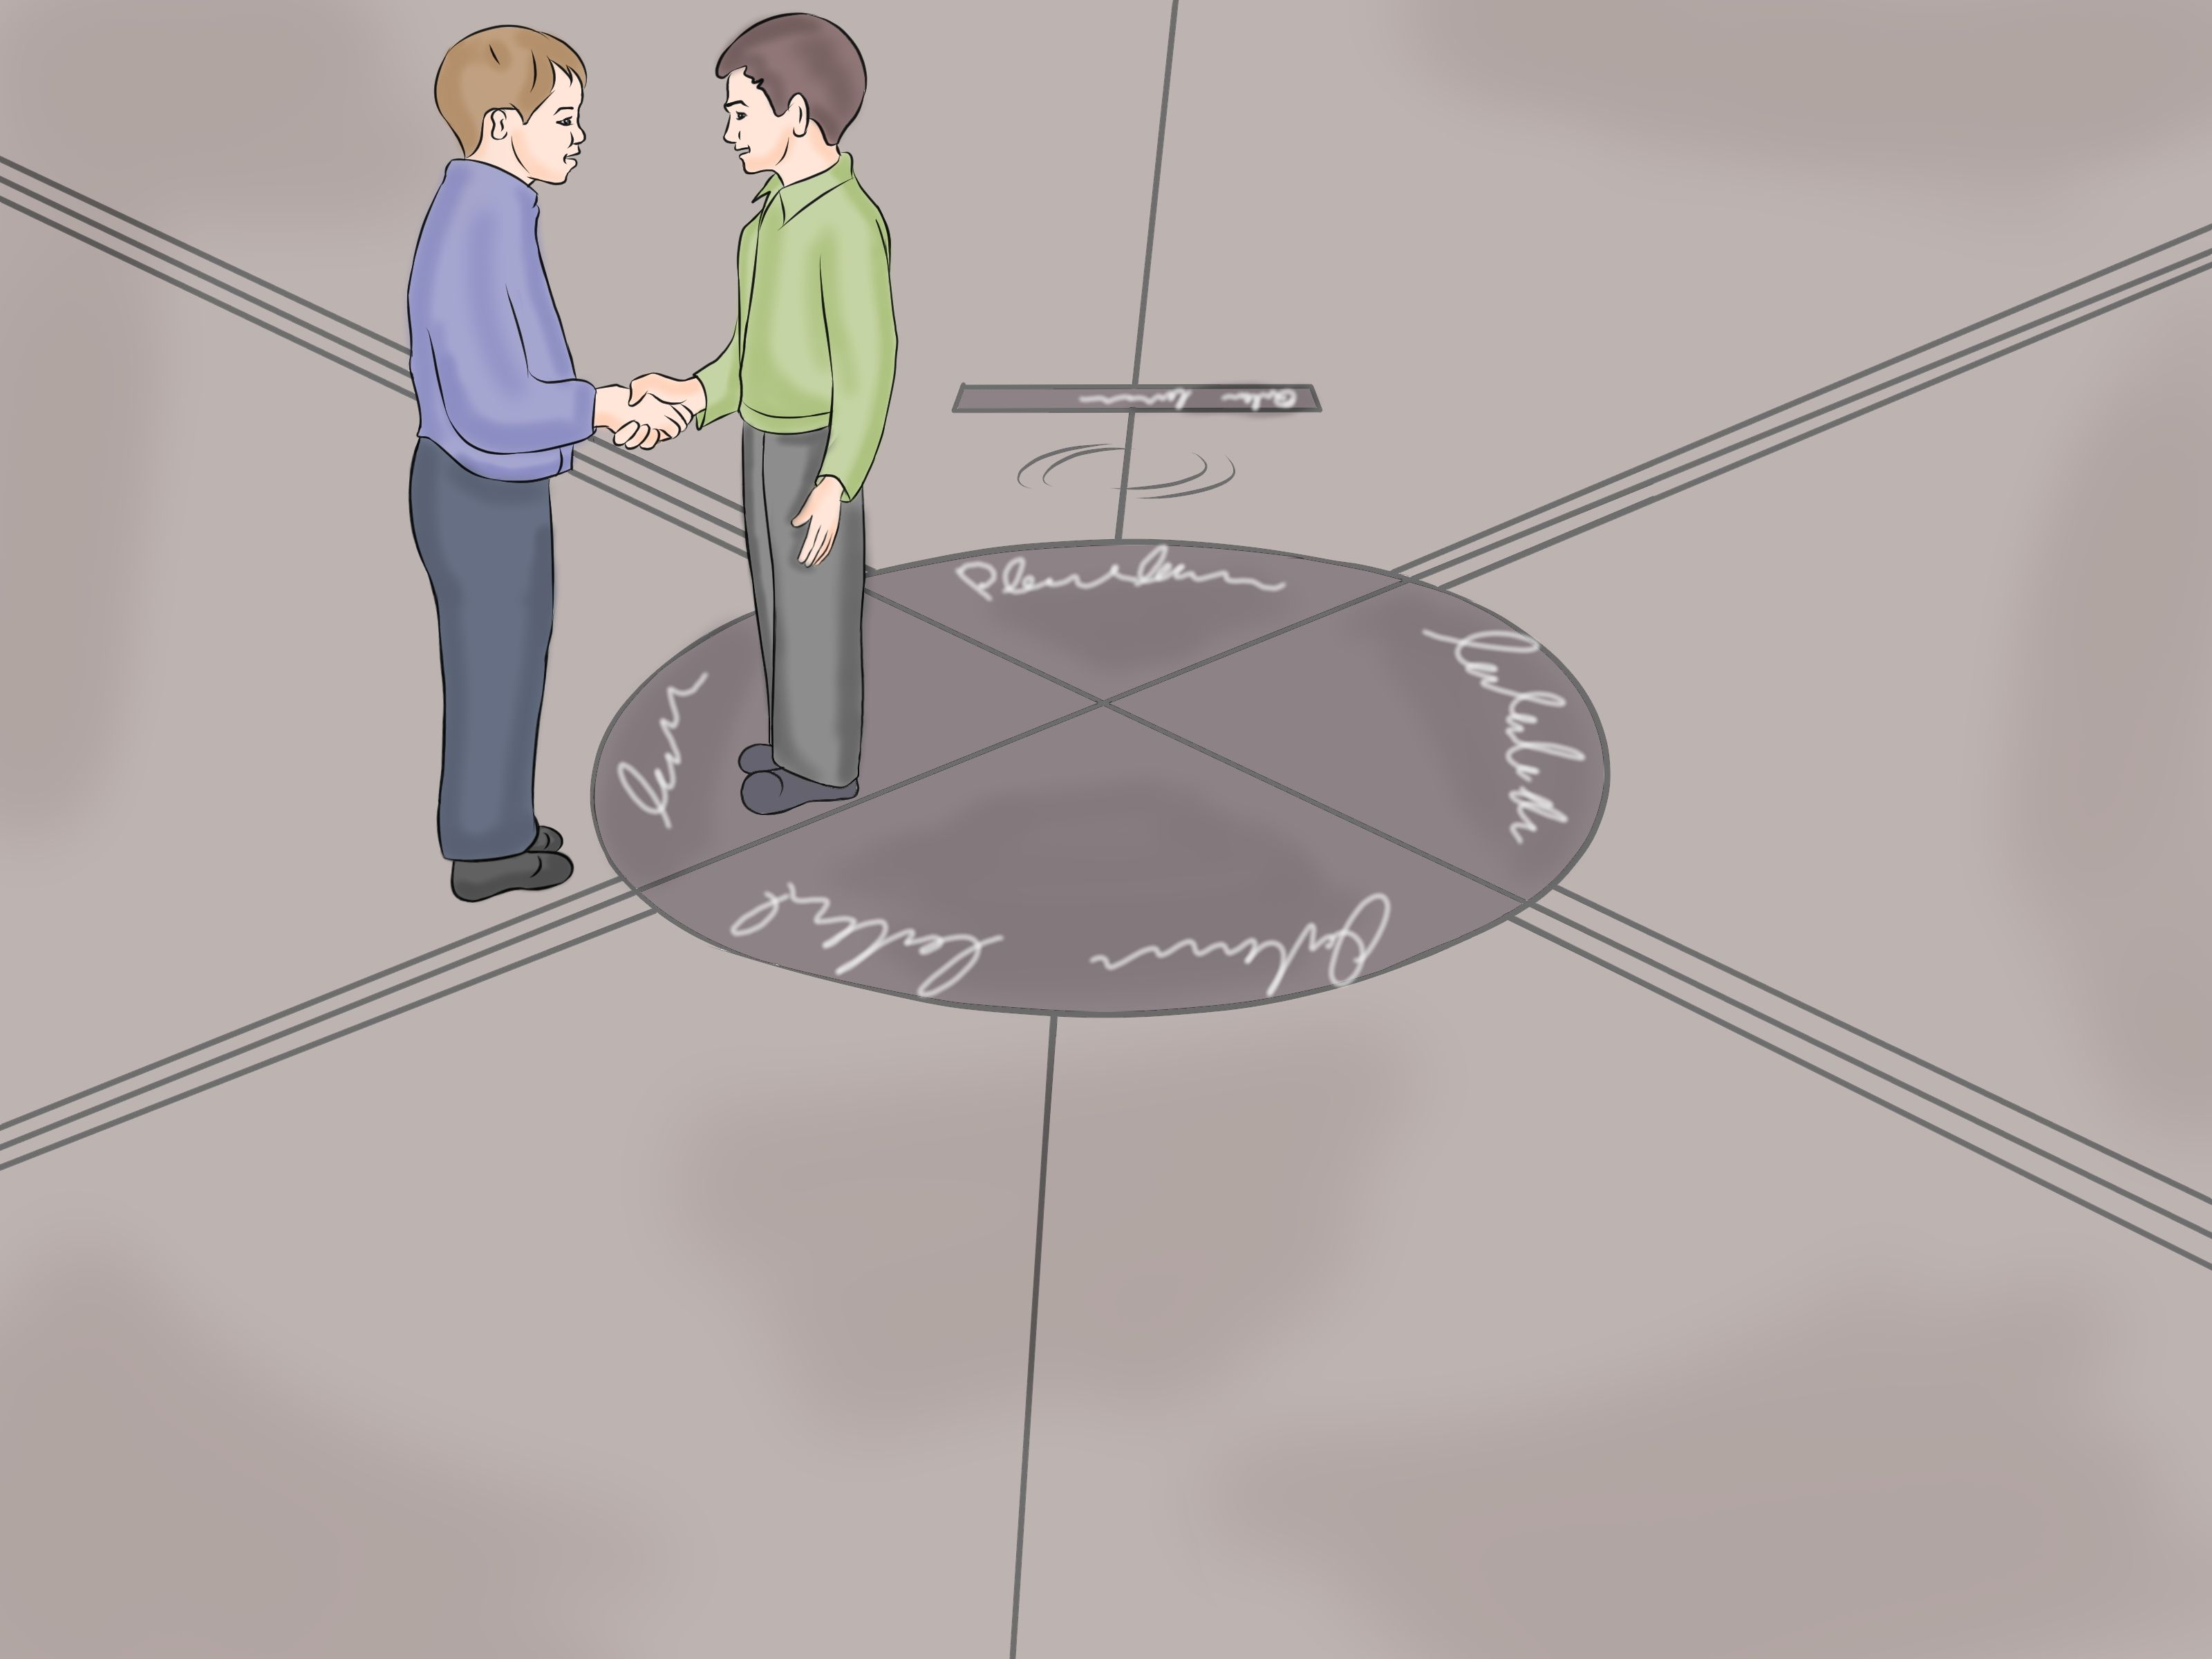 Play Four Corners Four corners, Play, Choices game